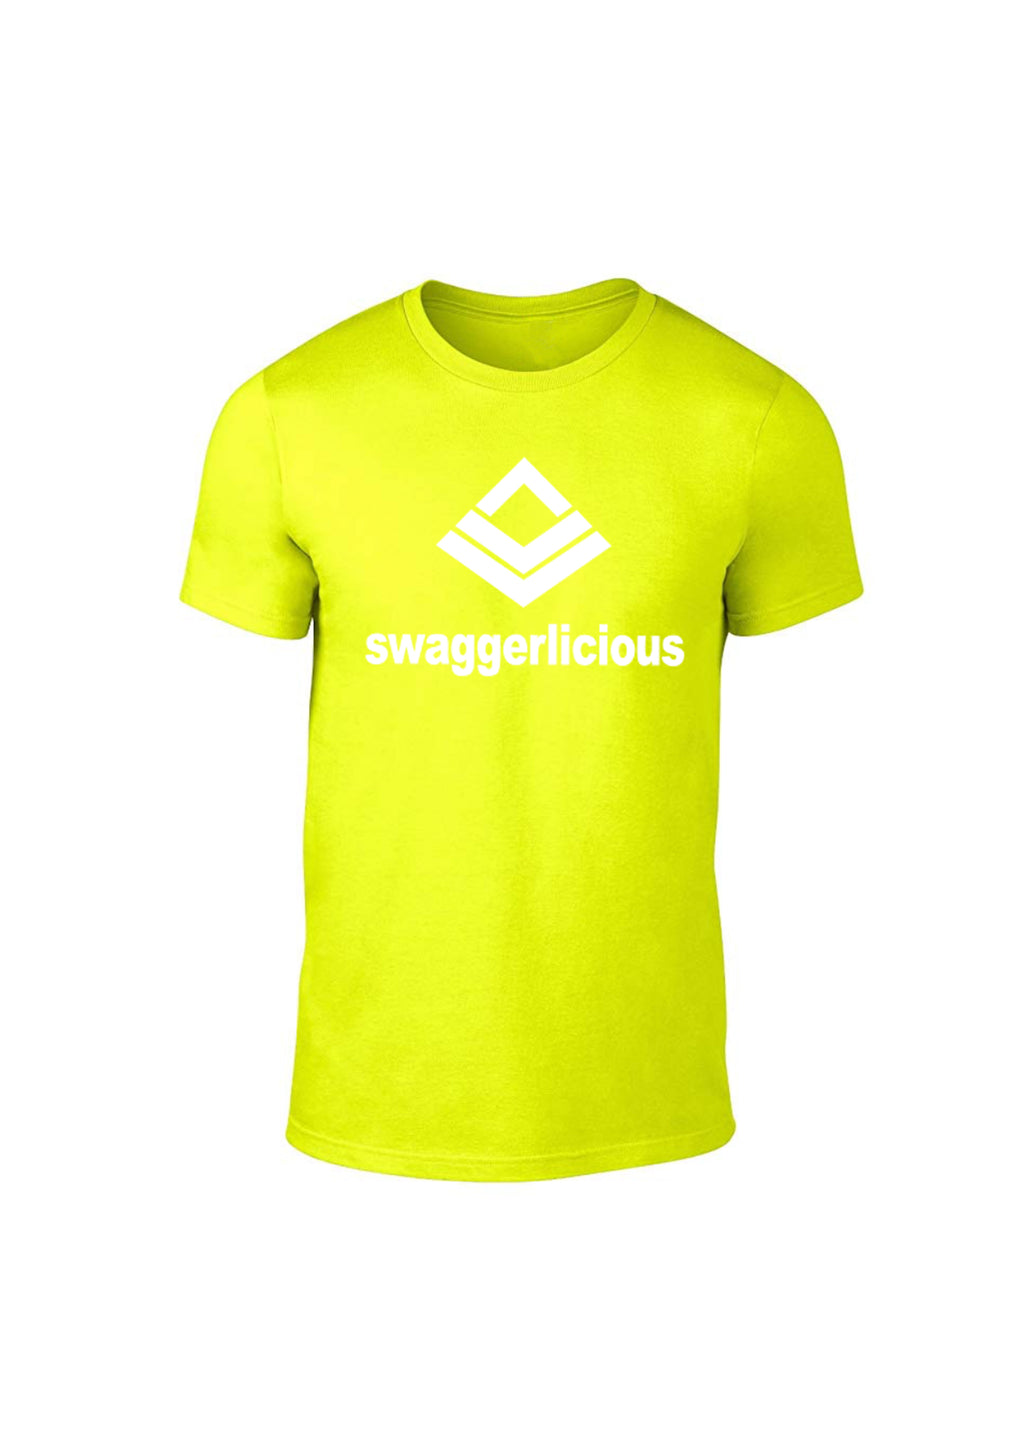 Swaggerlicious Classic Neon Yellow Light Sport Tee - swaggerlicious-clothing.com